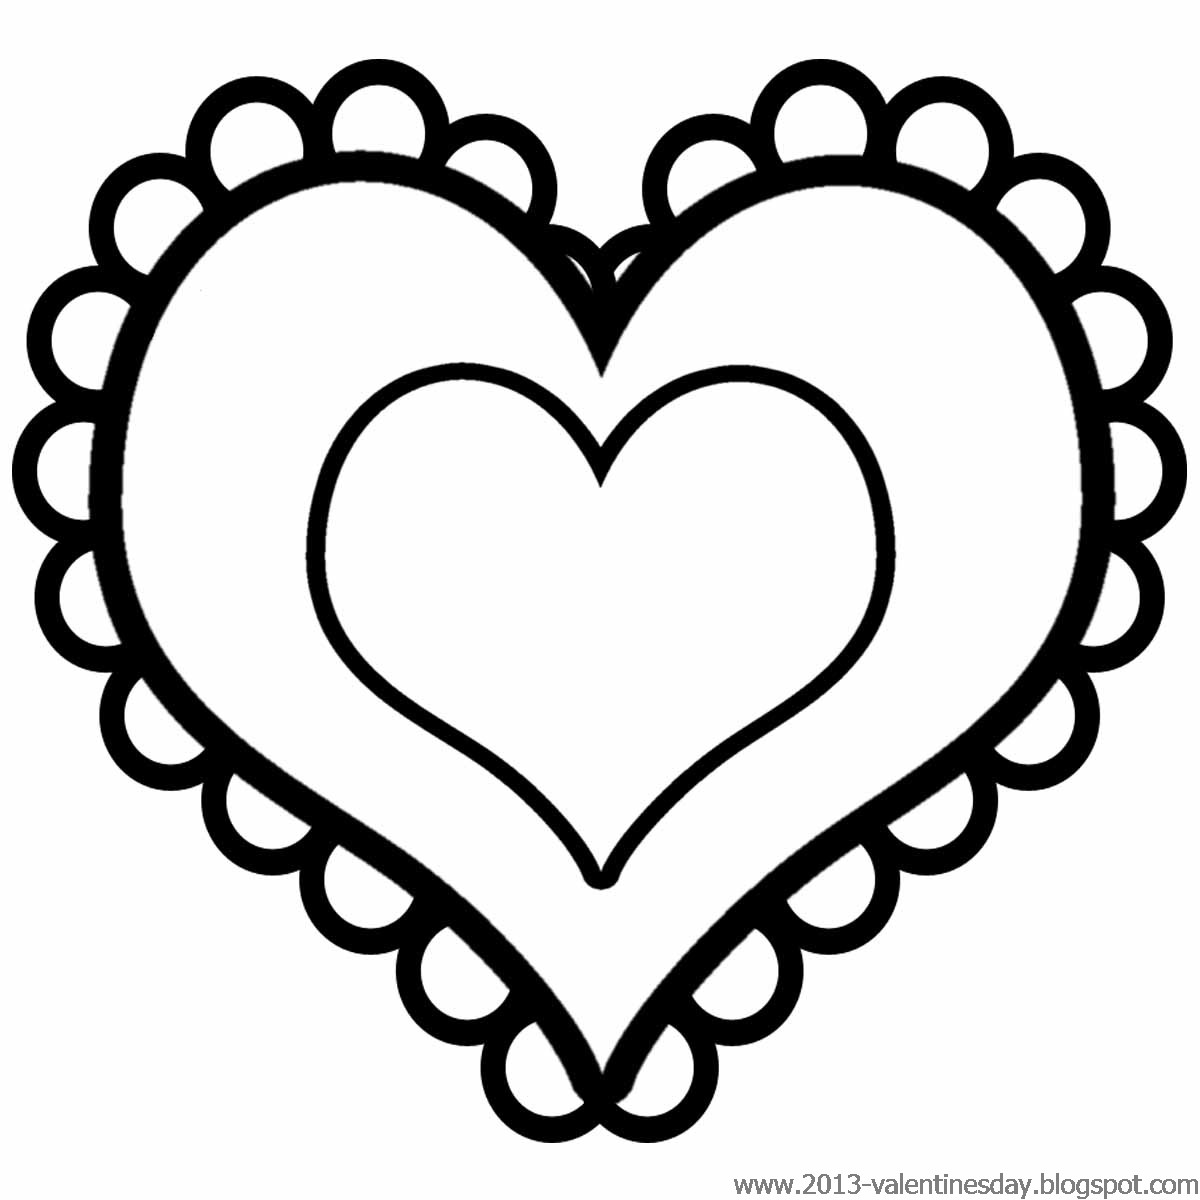 Valentines day clipart free banner library download Free black and white valentines day clipart - ClipartFest banner library download